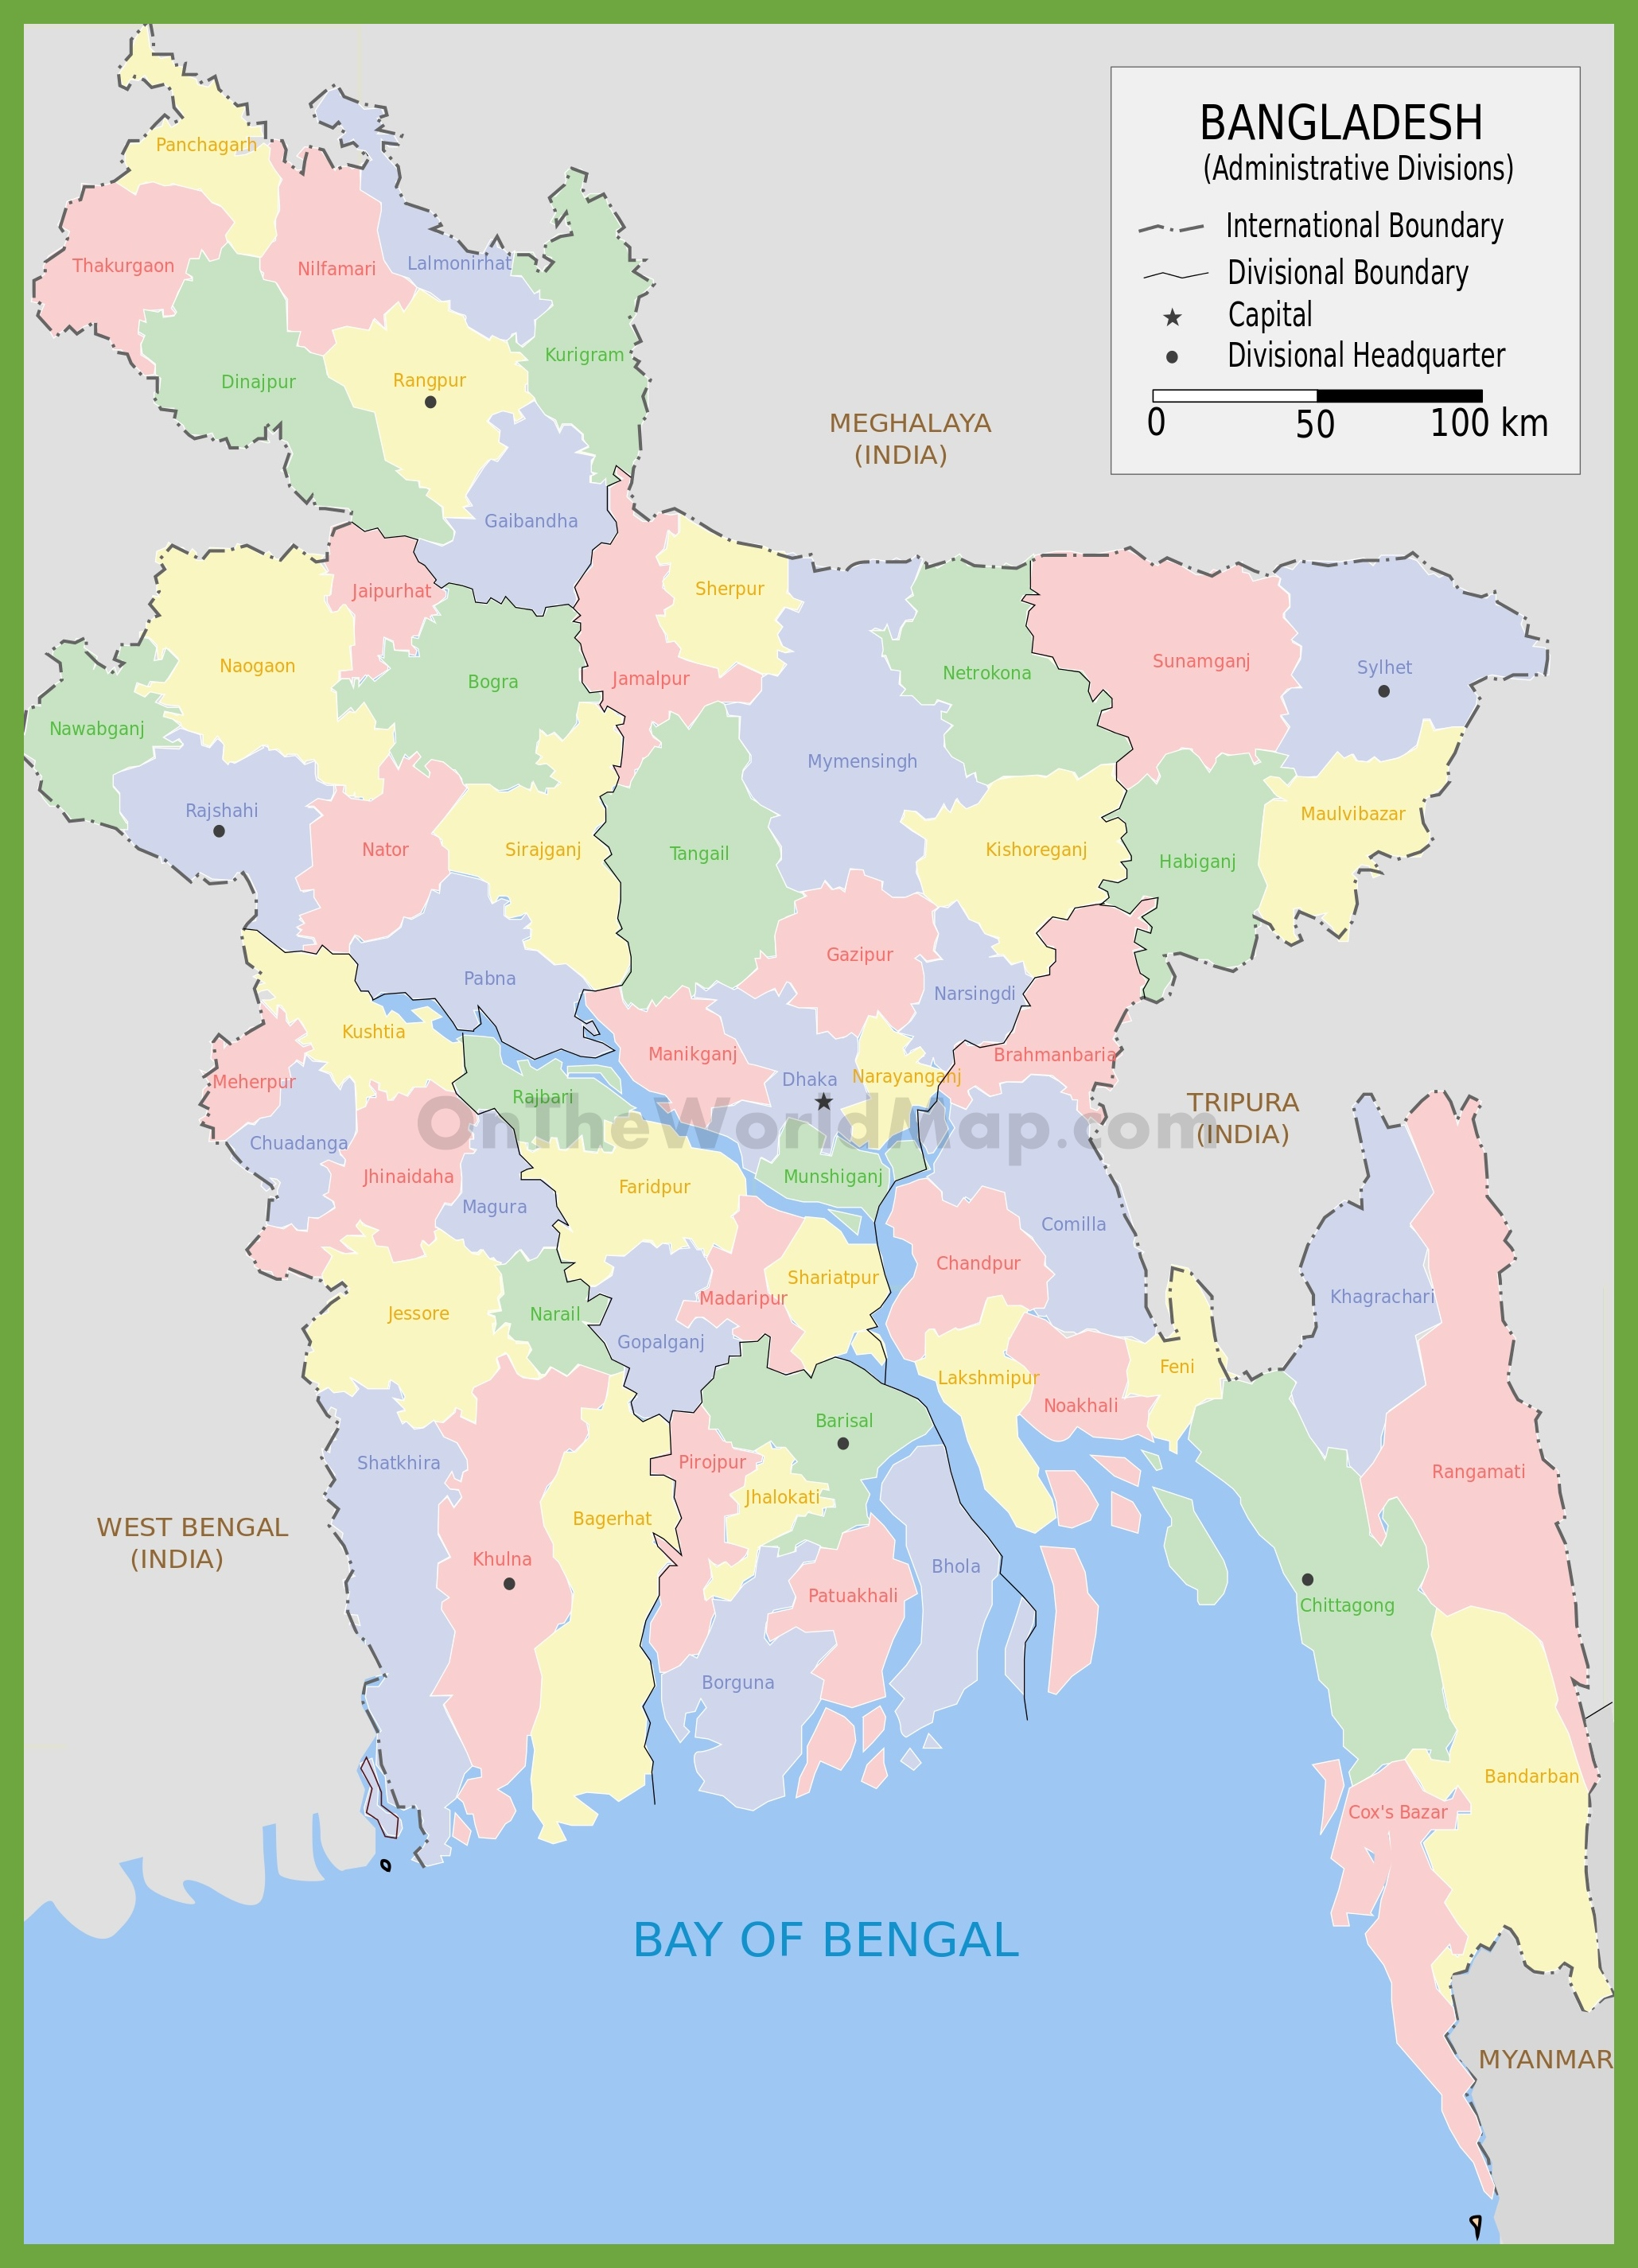 Administrative map of districts in Bangladesh